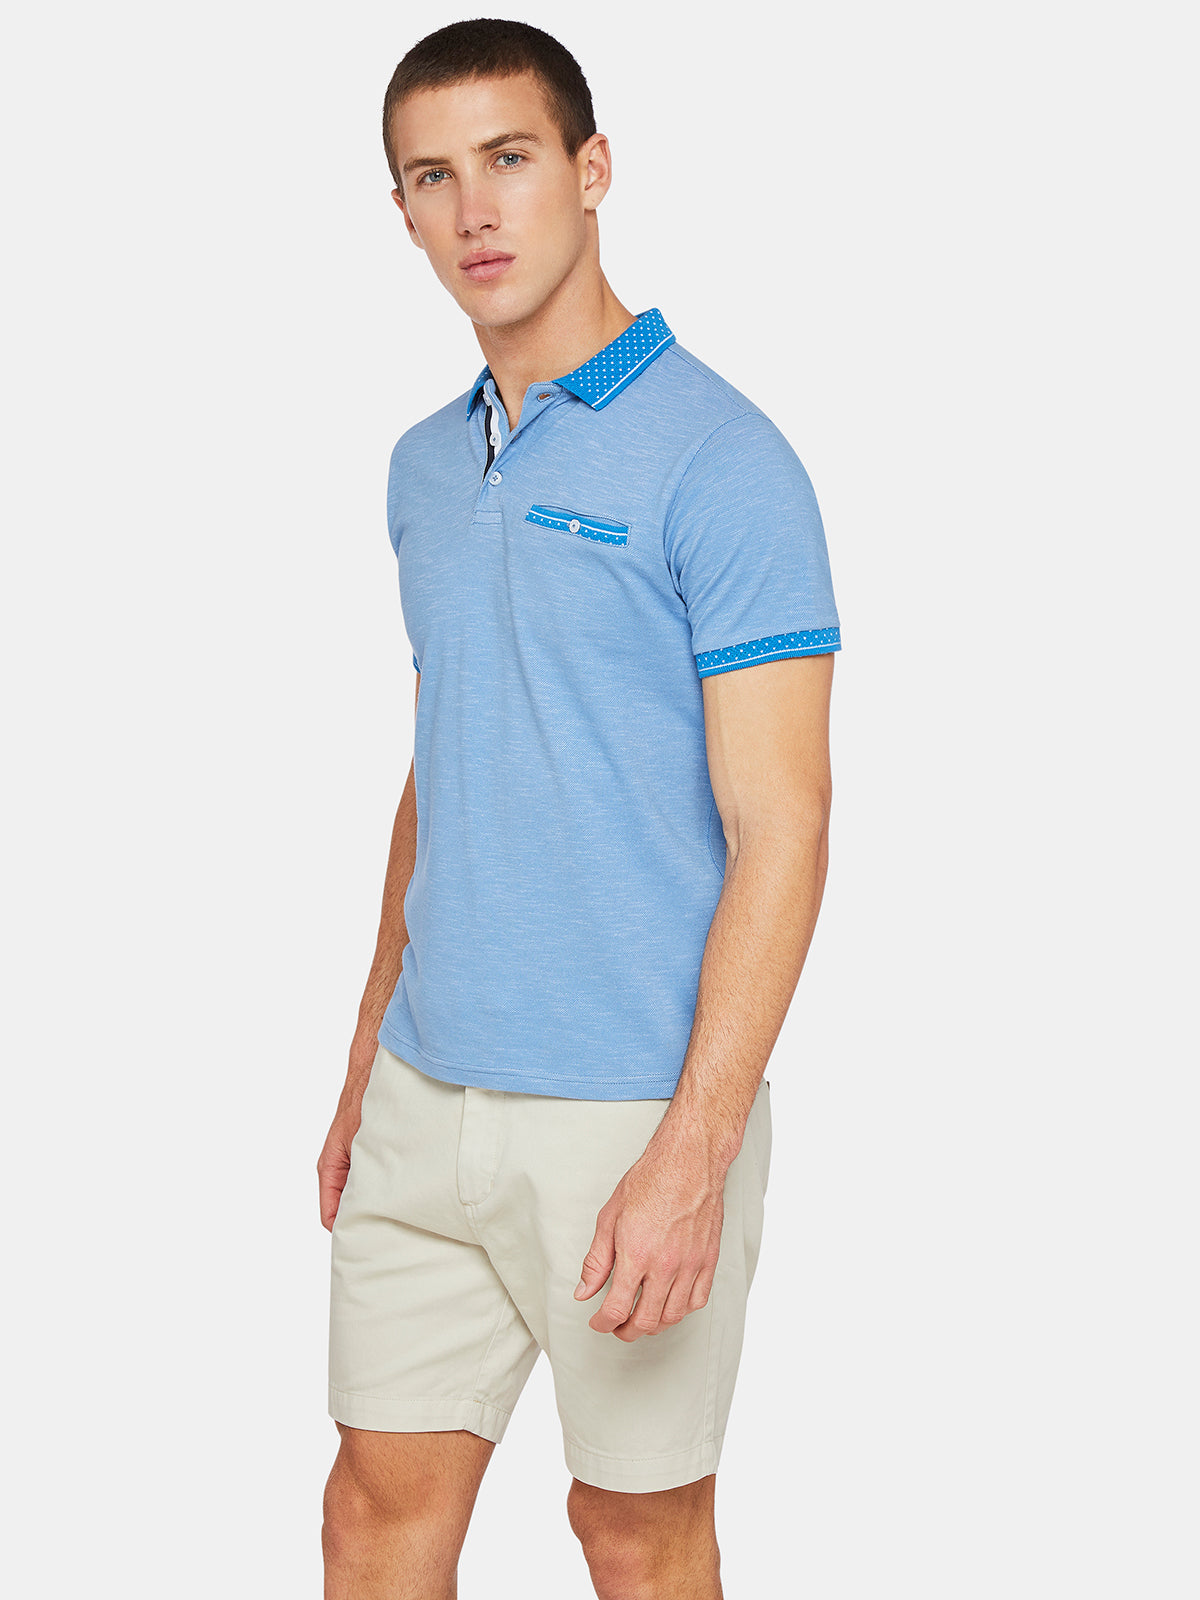 DANNY JACQUARD COLLAR POLO BLUE